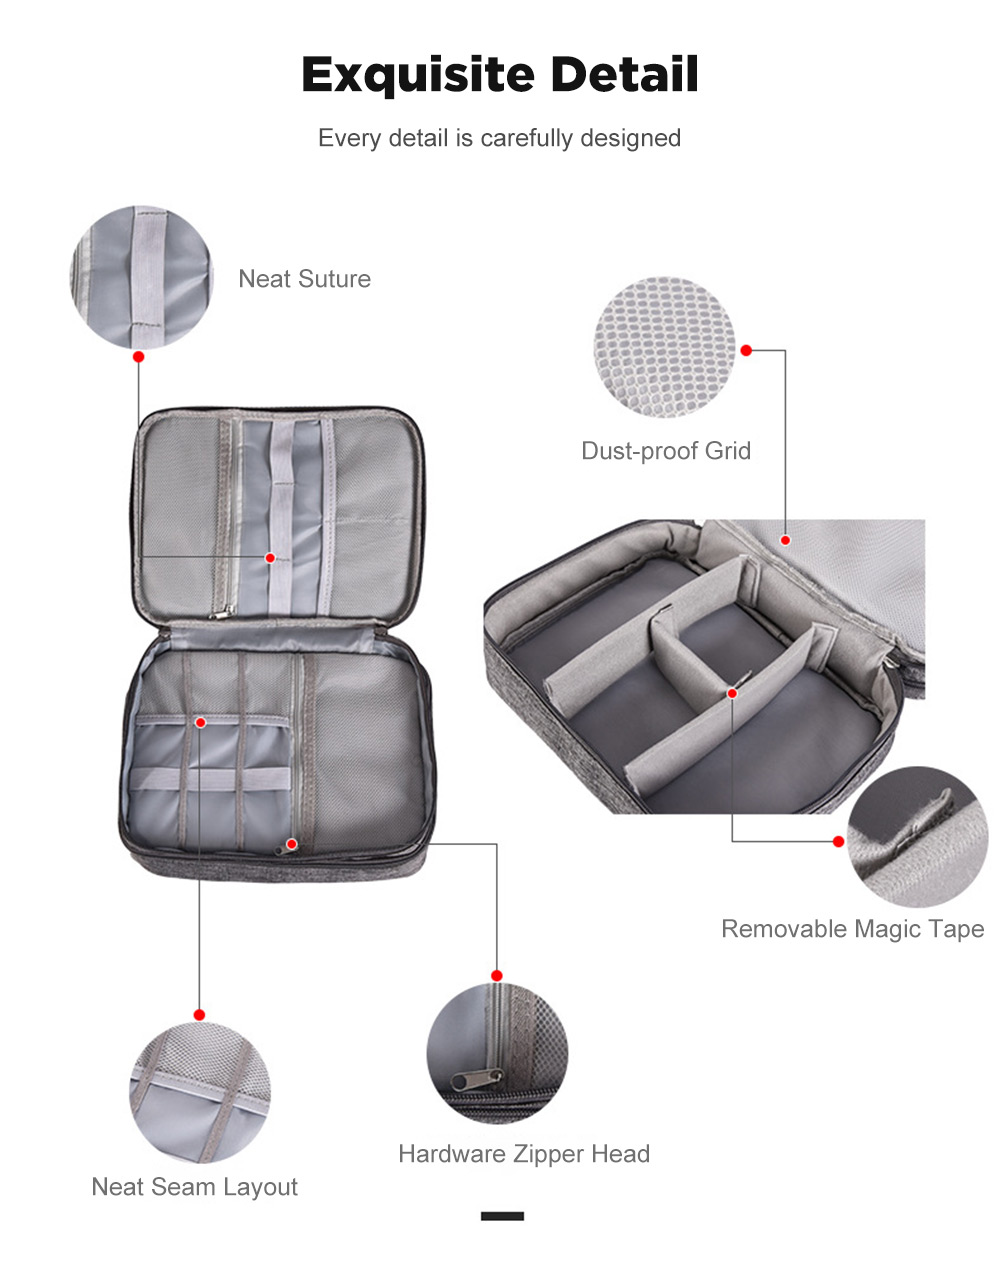 Xmund XD-DY25 Multifunction Digital Storage Bag USB Charger Earphone Organizer Portable Travel Cable Bag